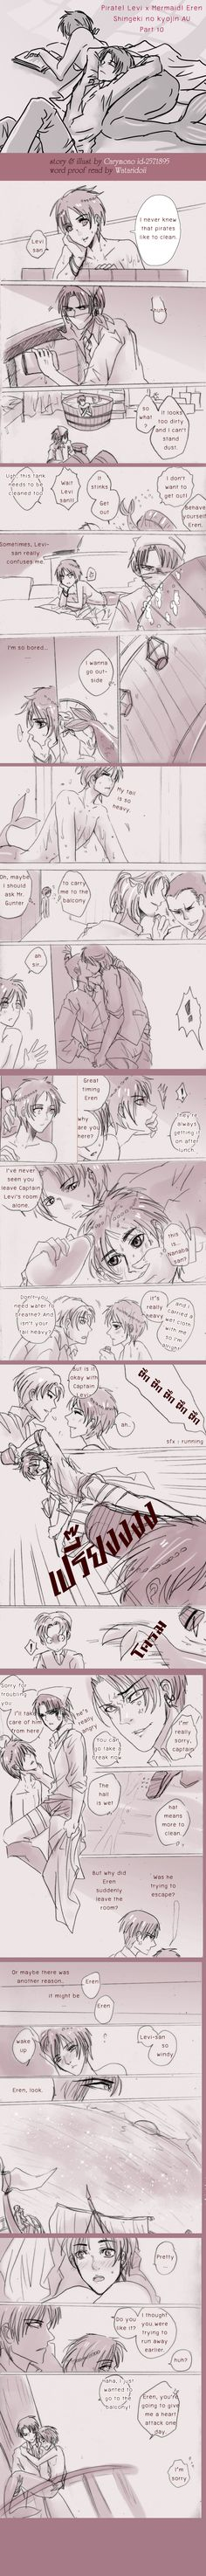 SnK'AU : Pirate!Levi x Mermaid!Eren part10 by illuscarymono.deviantart.com on @deviantART